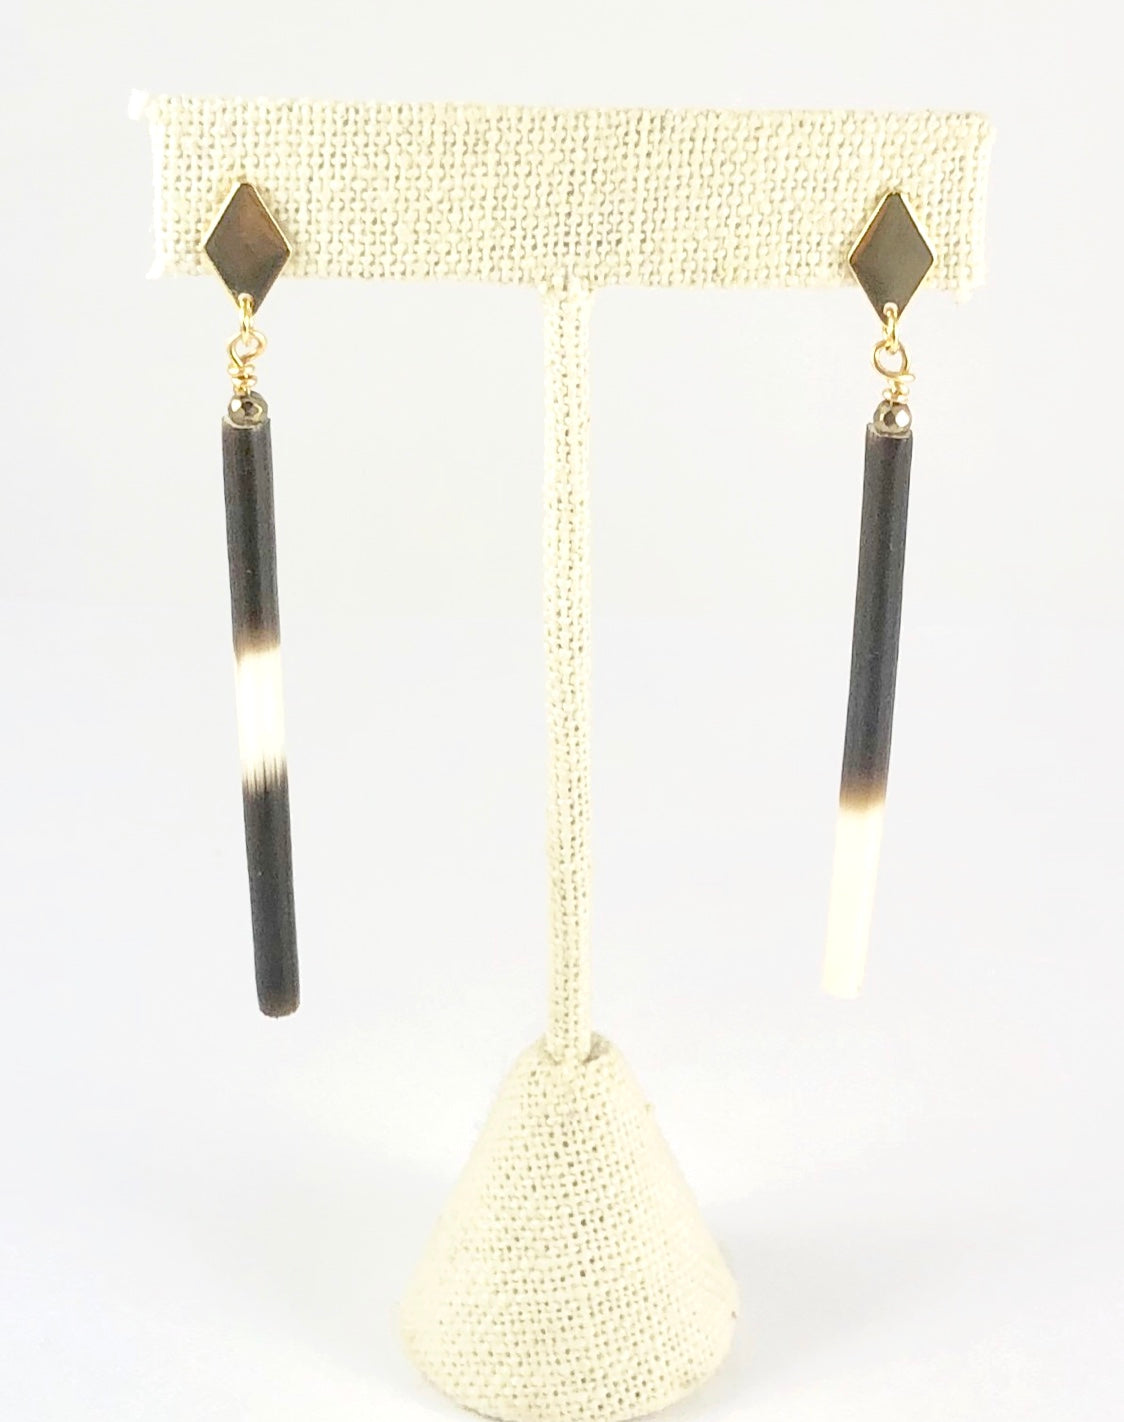 Thin African Porcupine Quill Earrings - Gold Plate Studs